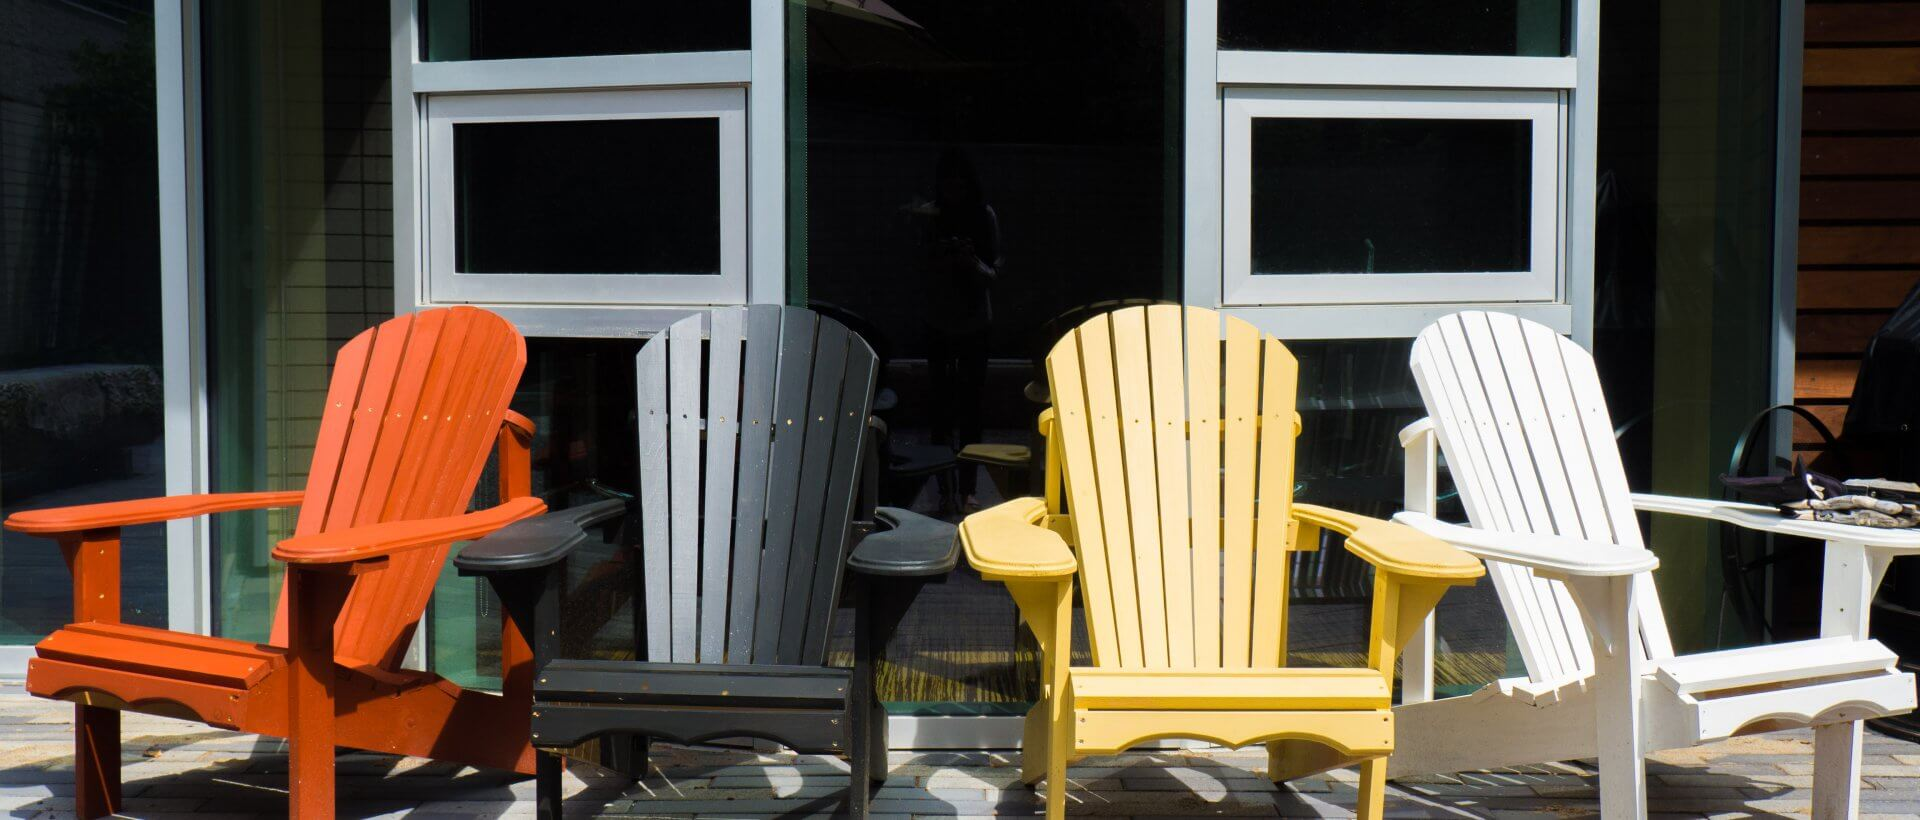 Chairs on the Indigenous Student Services patio